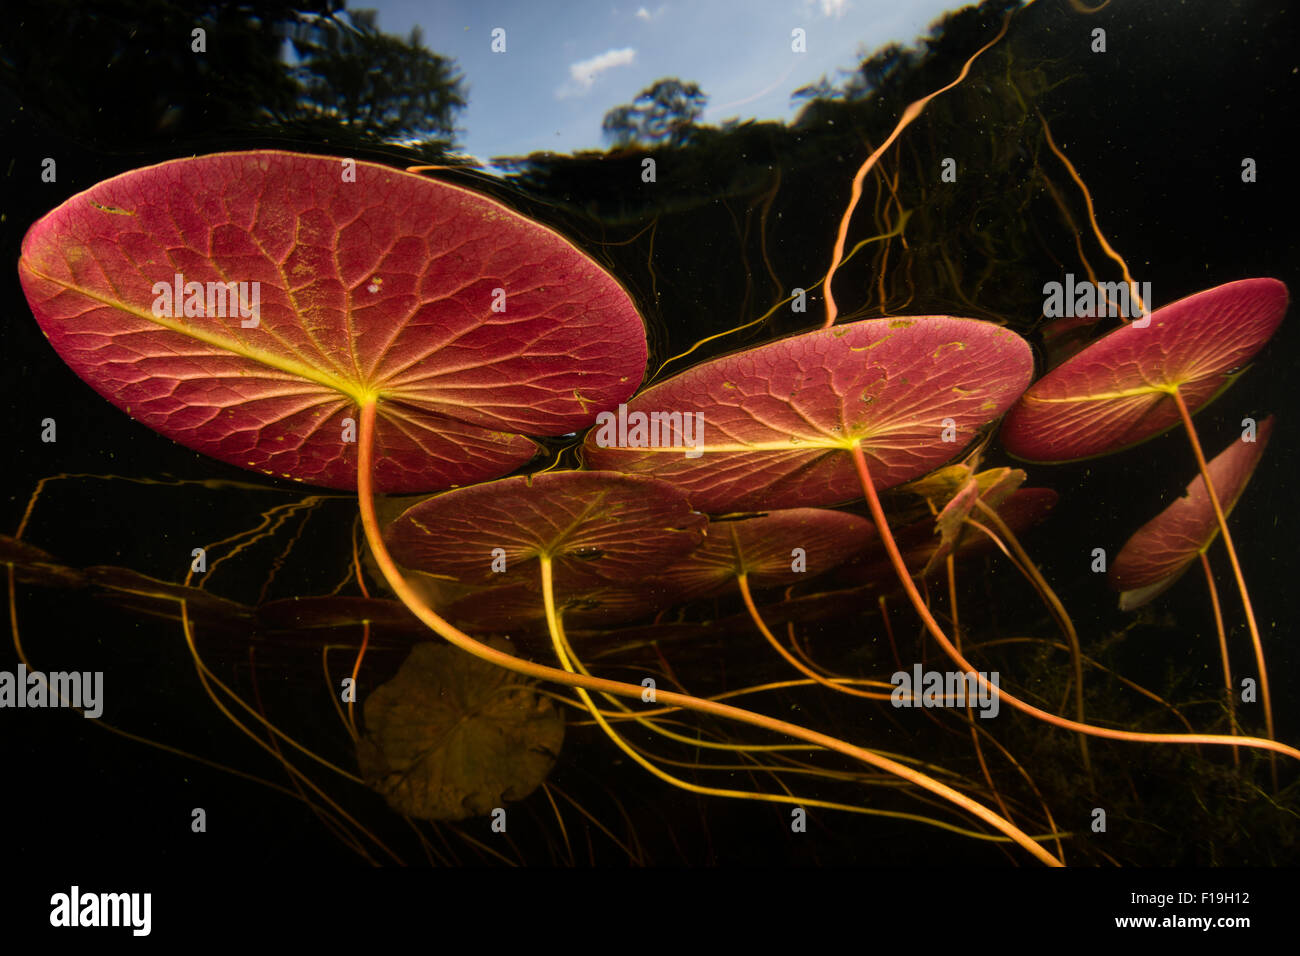 Lily pads grow in a freshwater pond in Cape Cod, Massachusetts. - Stock Image